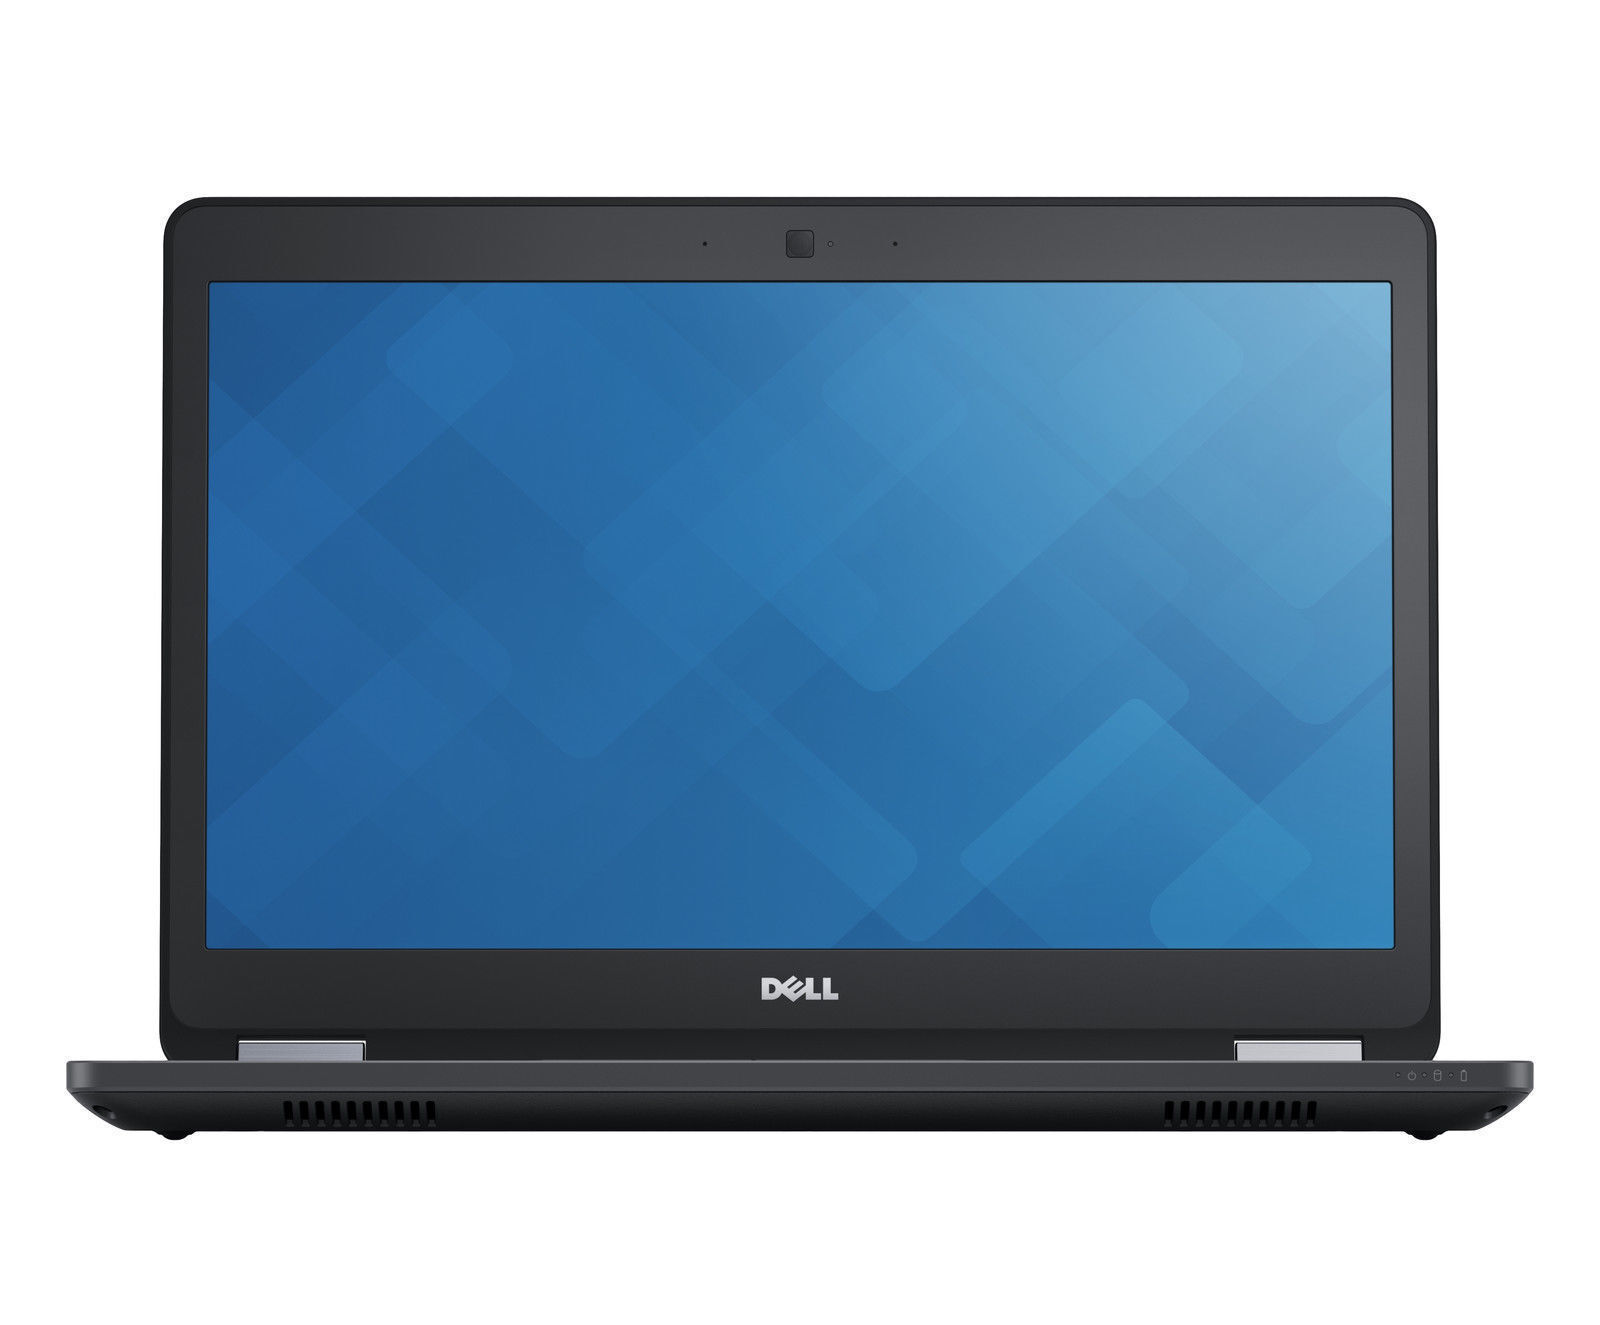 "Dell Latitude E5470 14"" 6th Gen i5-6300U 4x2.8GHz Turbo 8GB 256GB SSD Win 10 Pro"